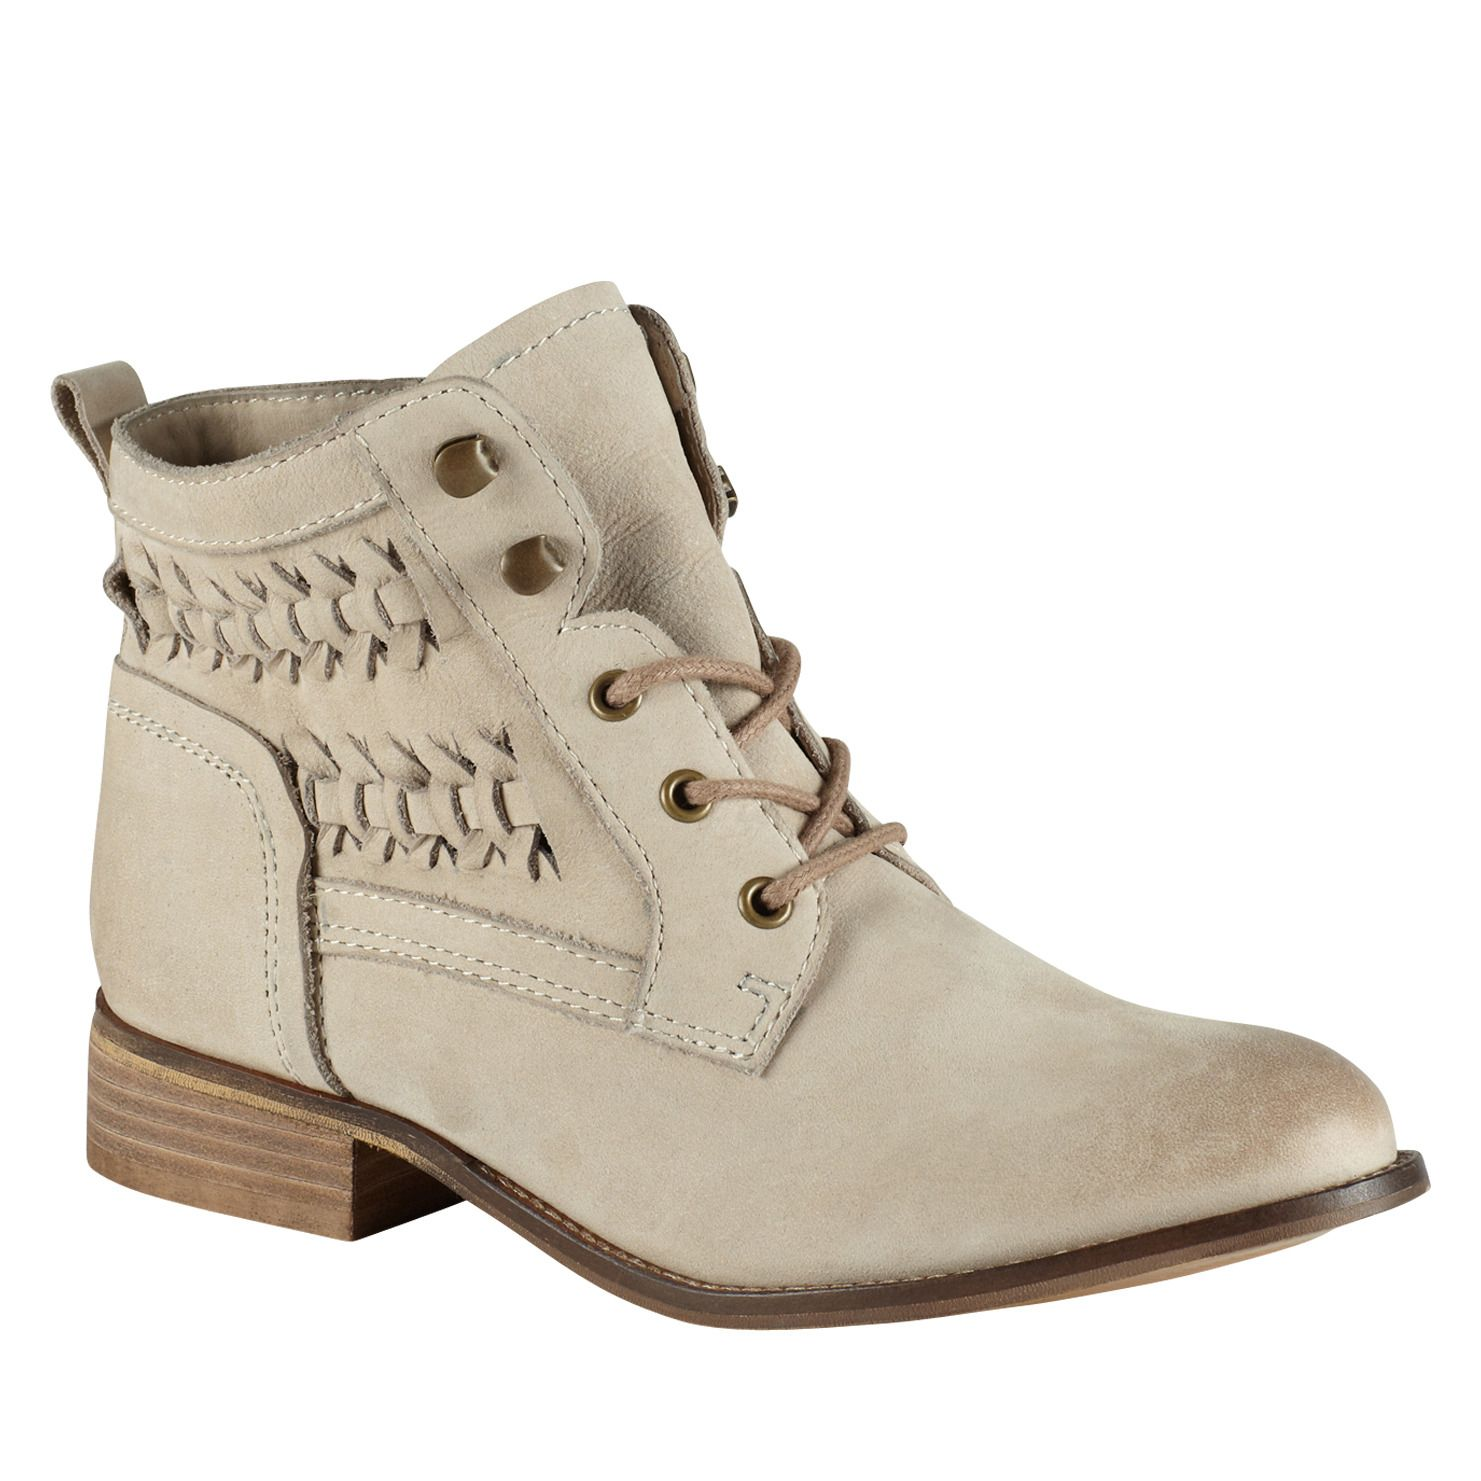 ALDO Shoes.   Boots, Womens boots ankle